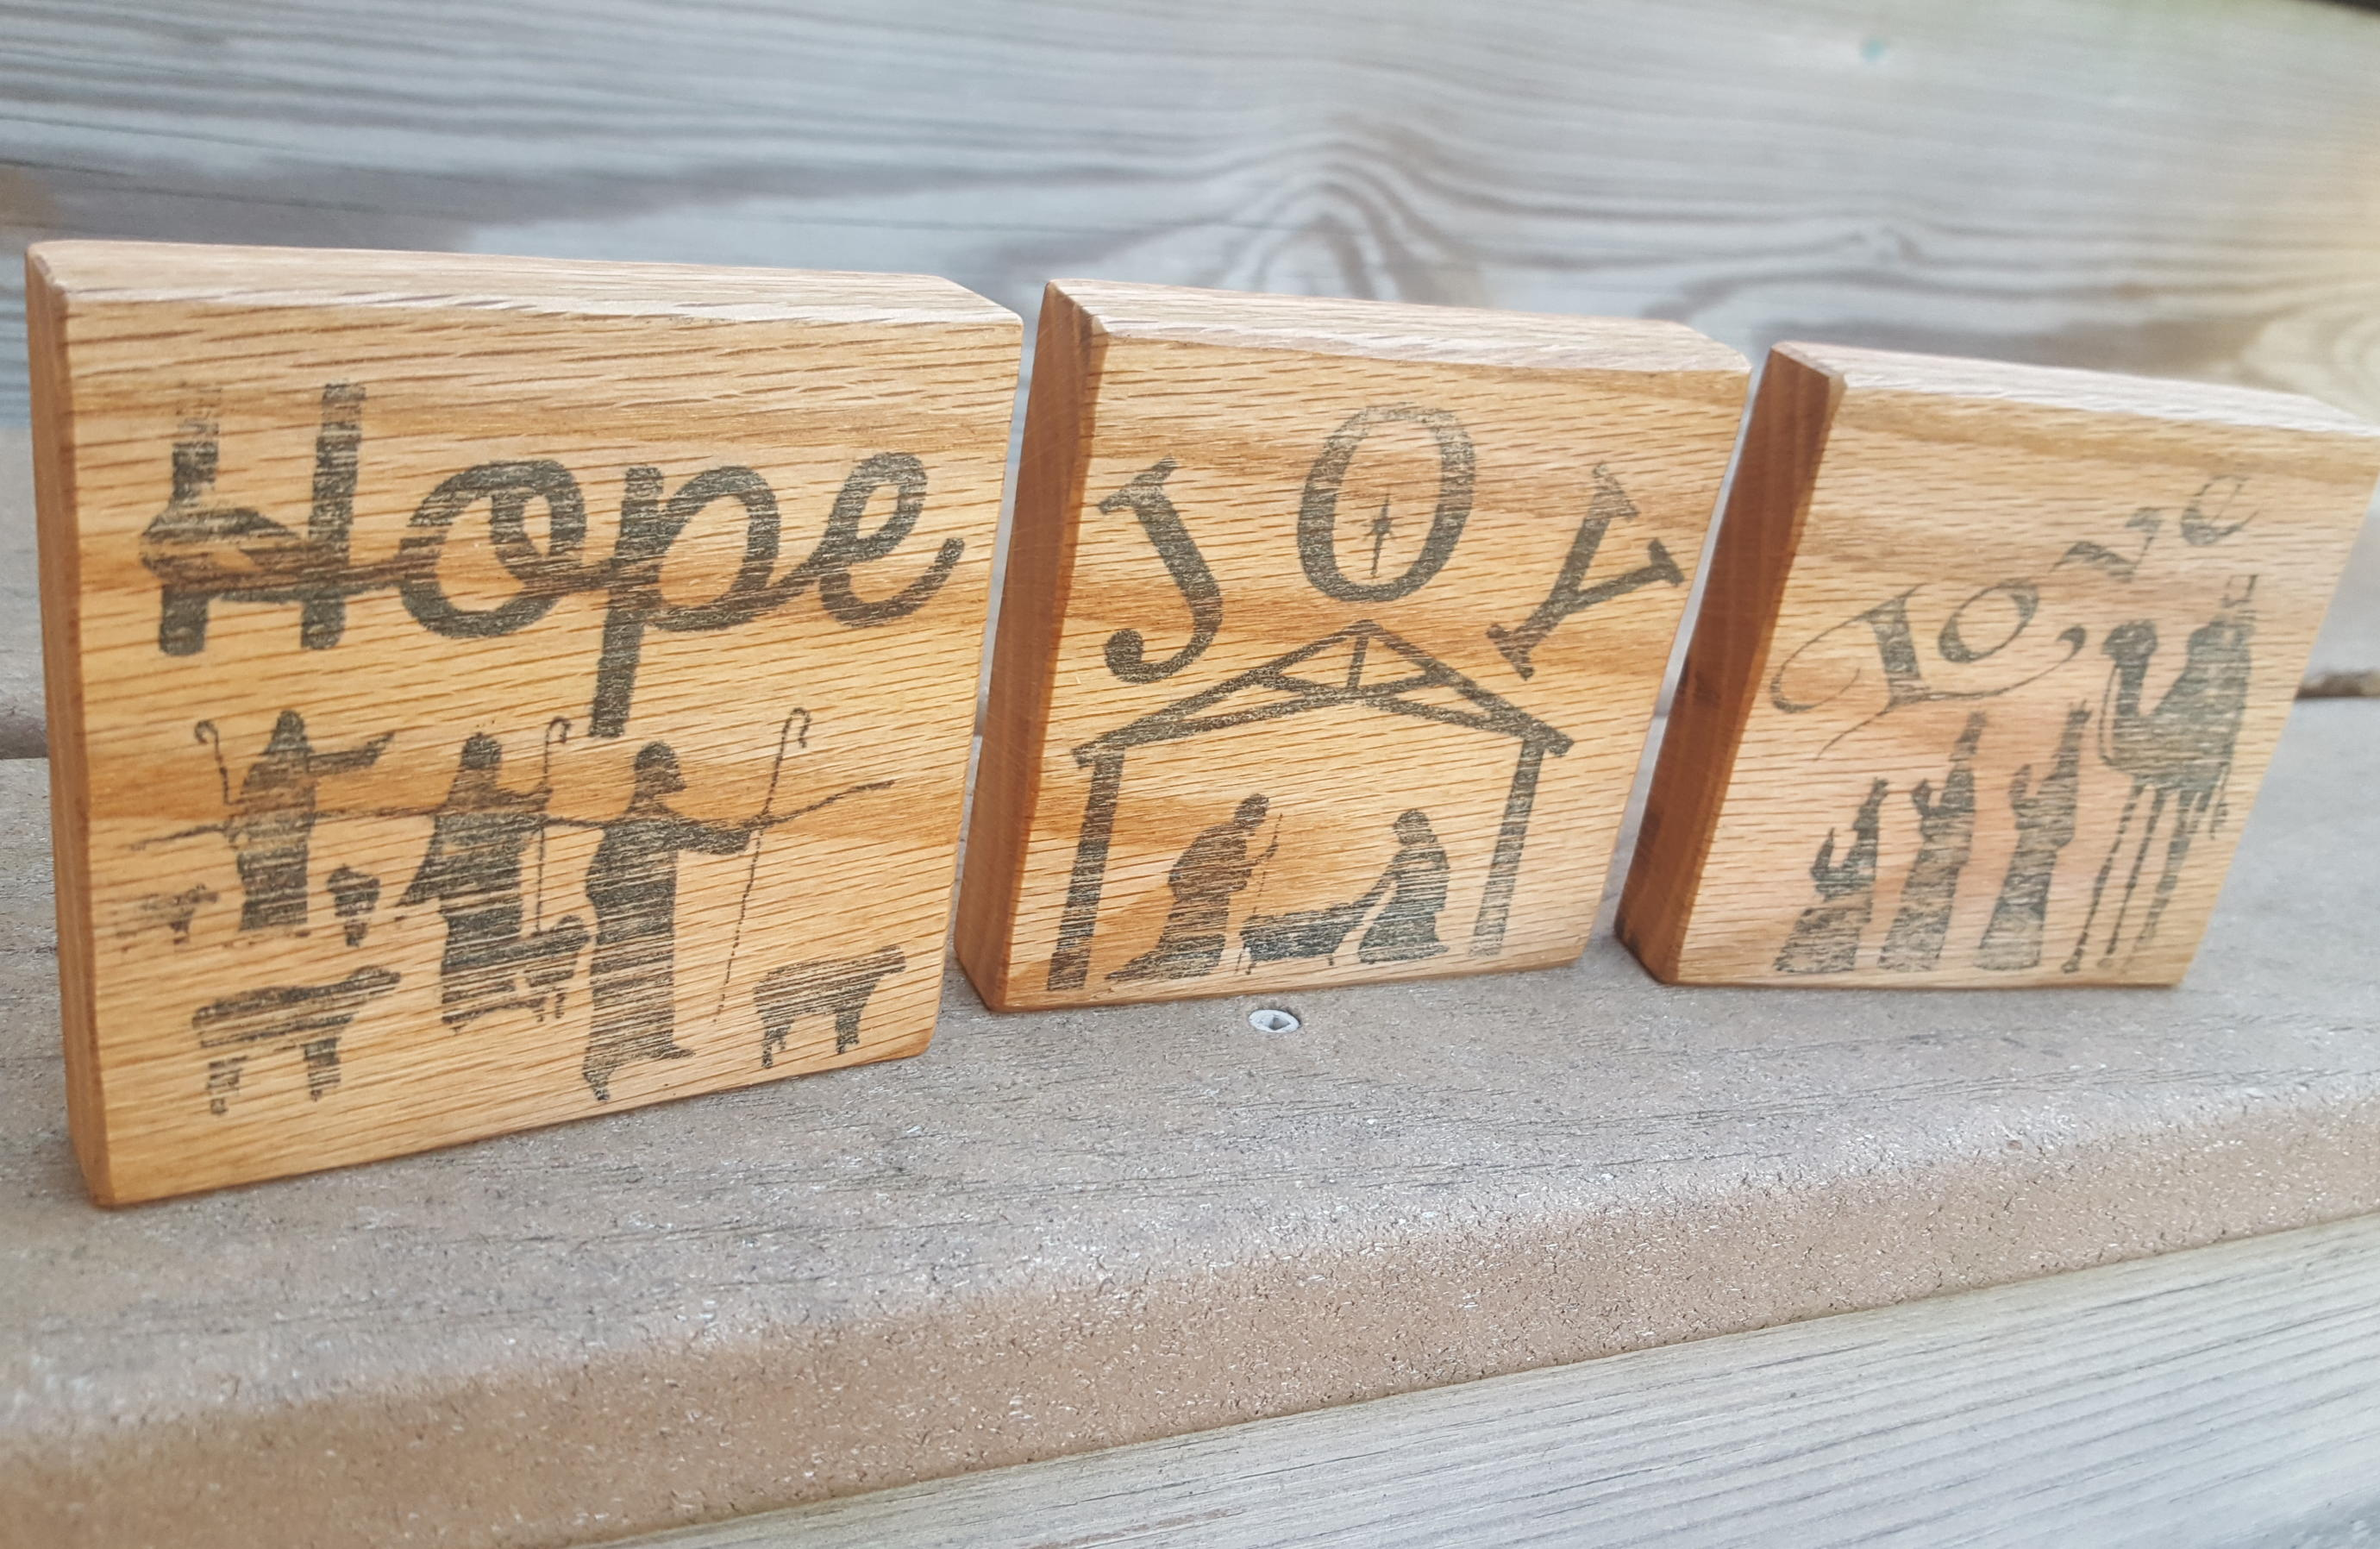 Wood Block Wall Handmade Inked Christmas Nativity 3 Piece Oak Wood Block Set Black